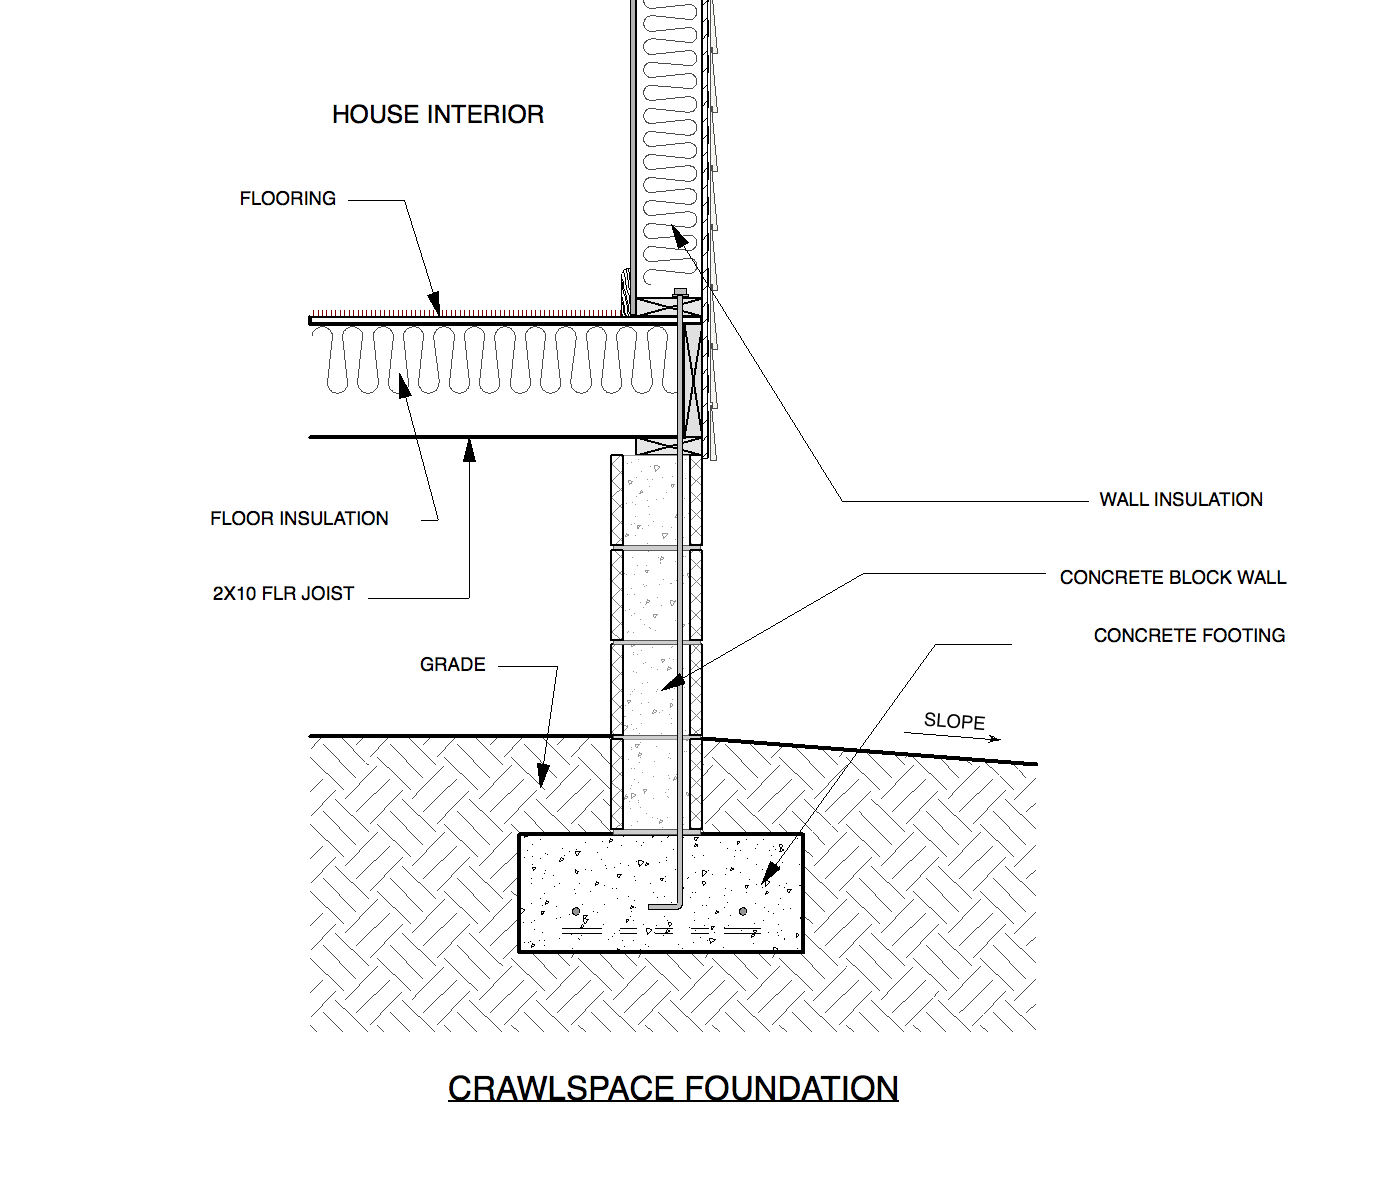 House Foundations, Crawlspace vs Raised Slab — Custom Home Design on houses with brick front, houses with metal roof, houses with wood, houses with storm doors, houses with attics, houses with shake, houses with aluminum siding, houses with florida room, houses with fiber cement, houses with crumbling foundations, houses with vaulted ceiling, houses with storm windows, houses with brick veneer, houses with partial brick, houses with masonite siding,